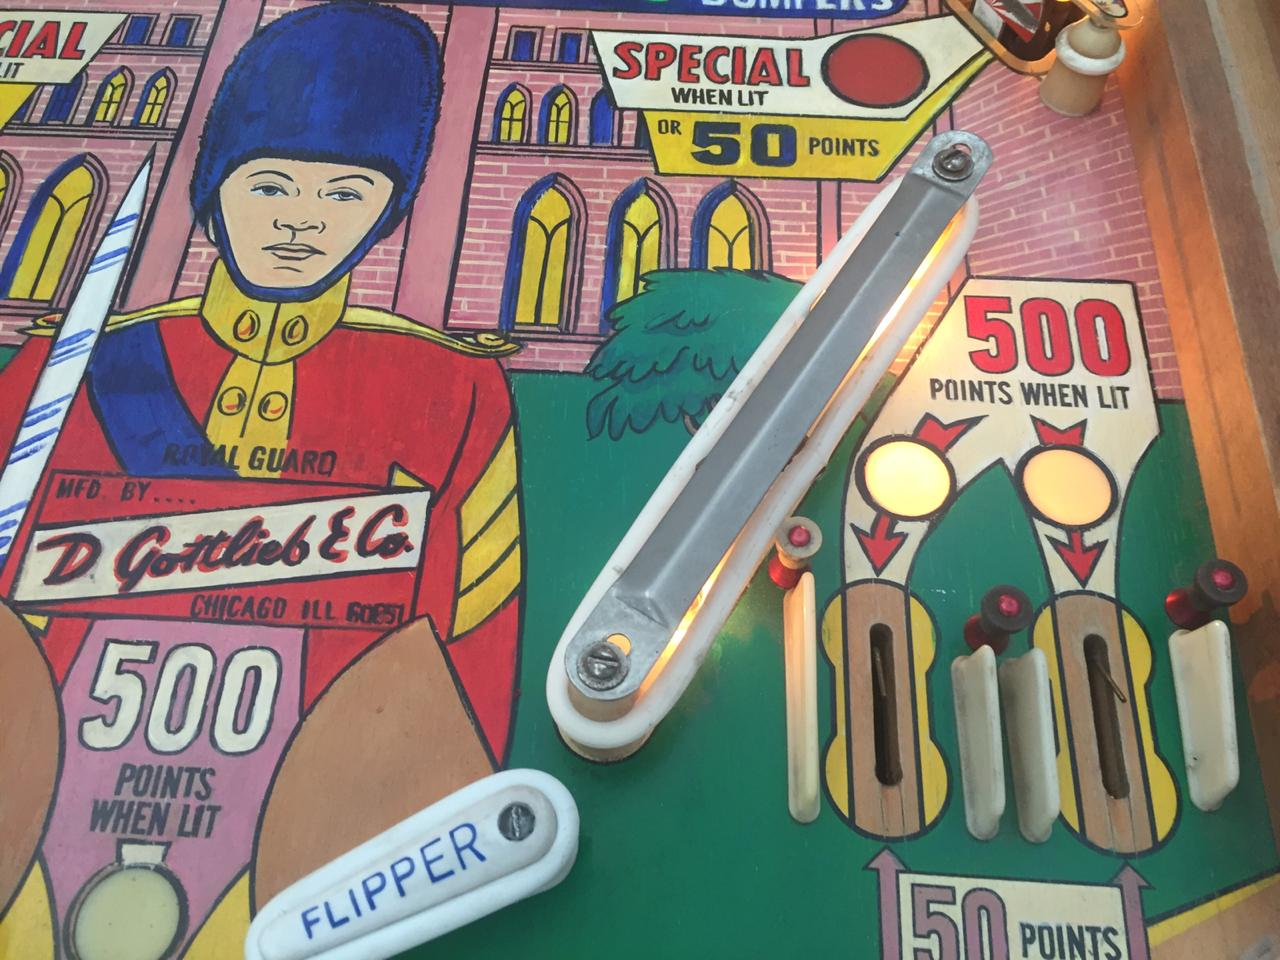 Palace Guard, a 1 player pinball machine manufactured by Gottlieb